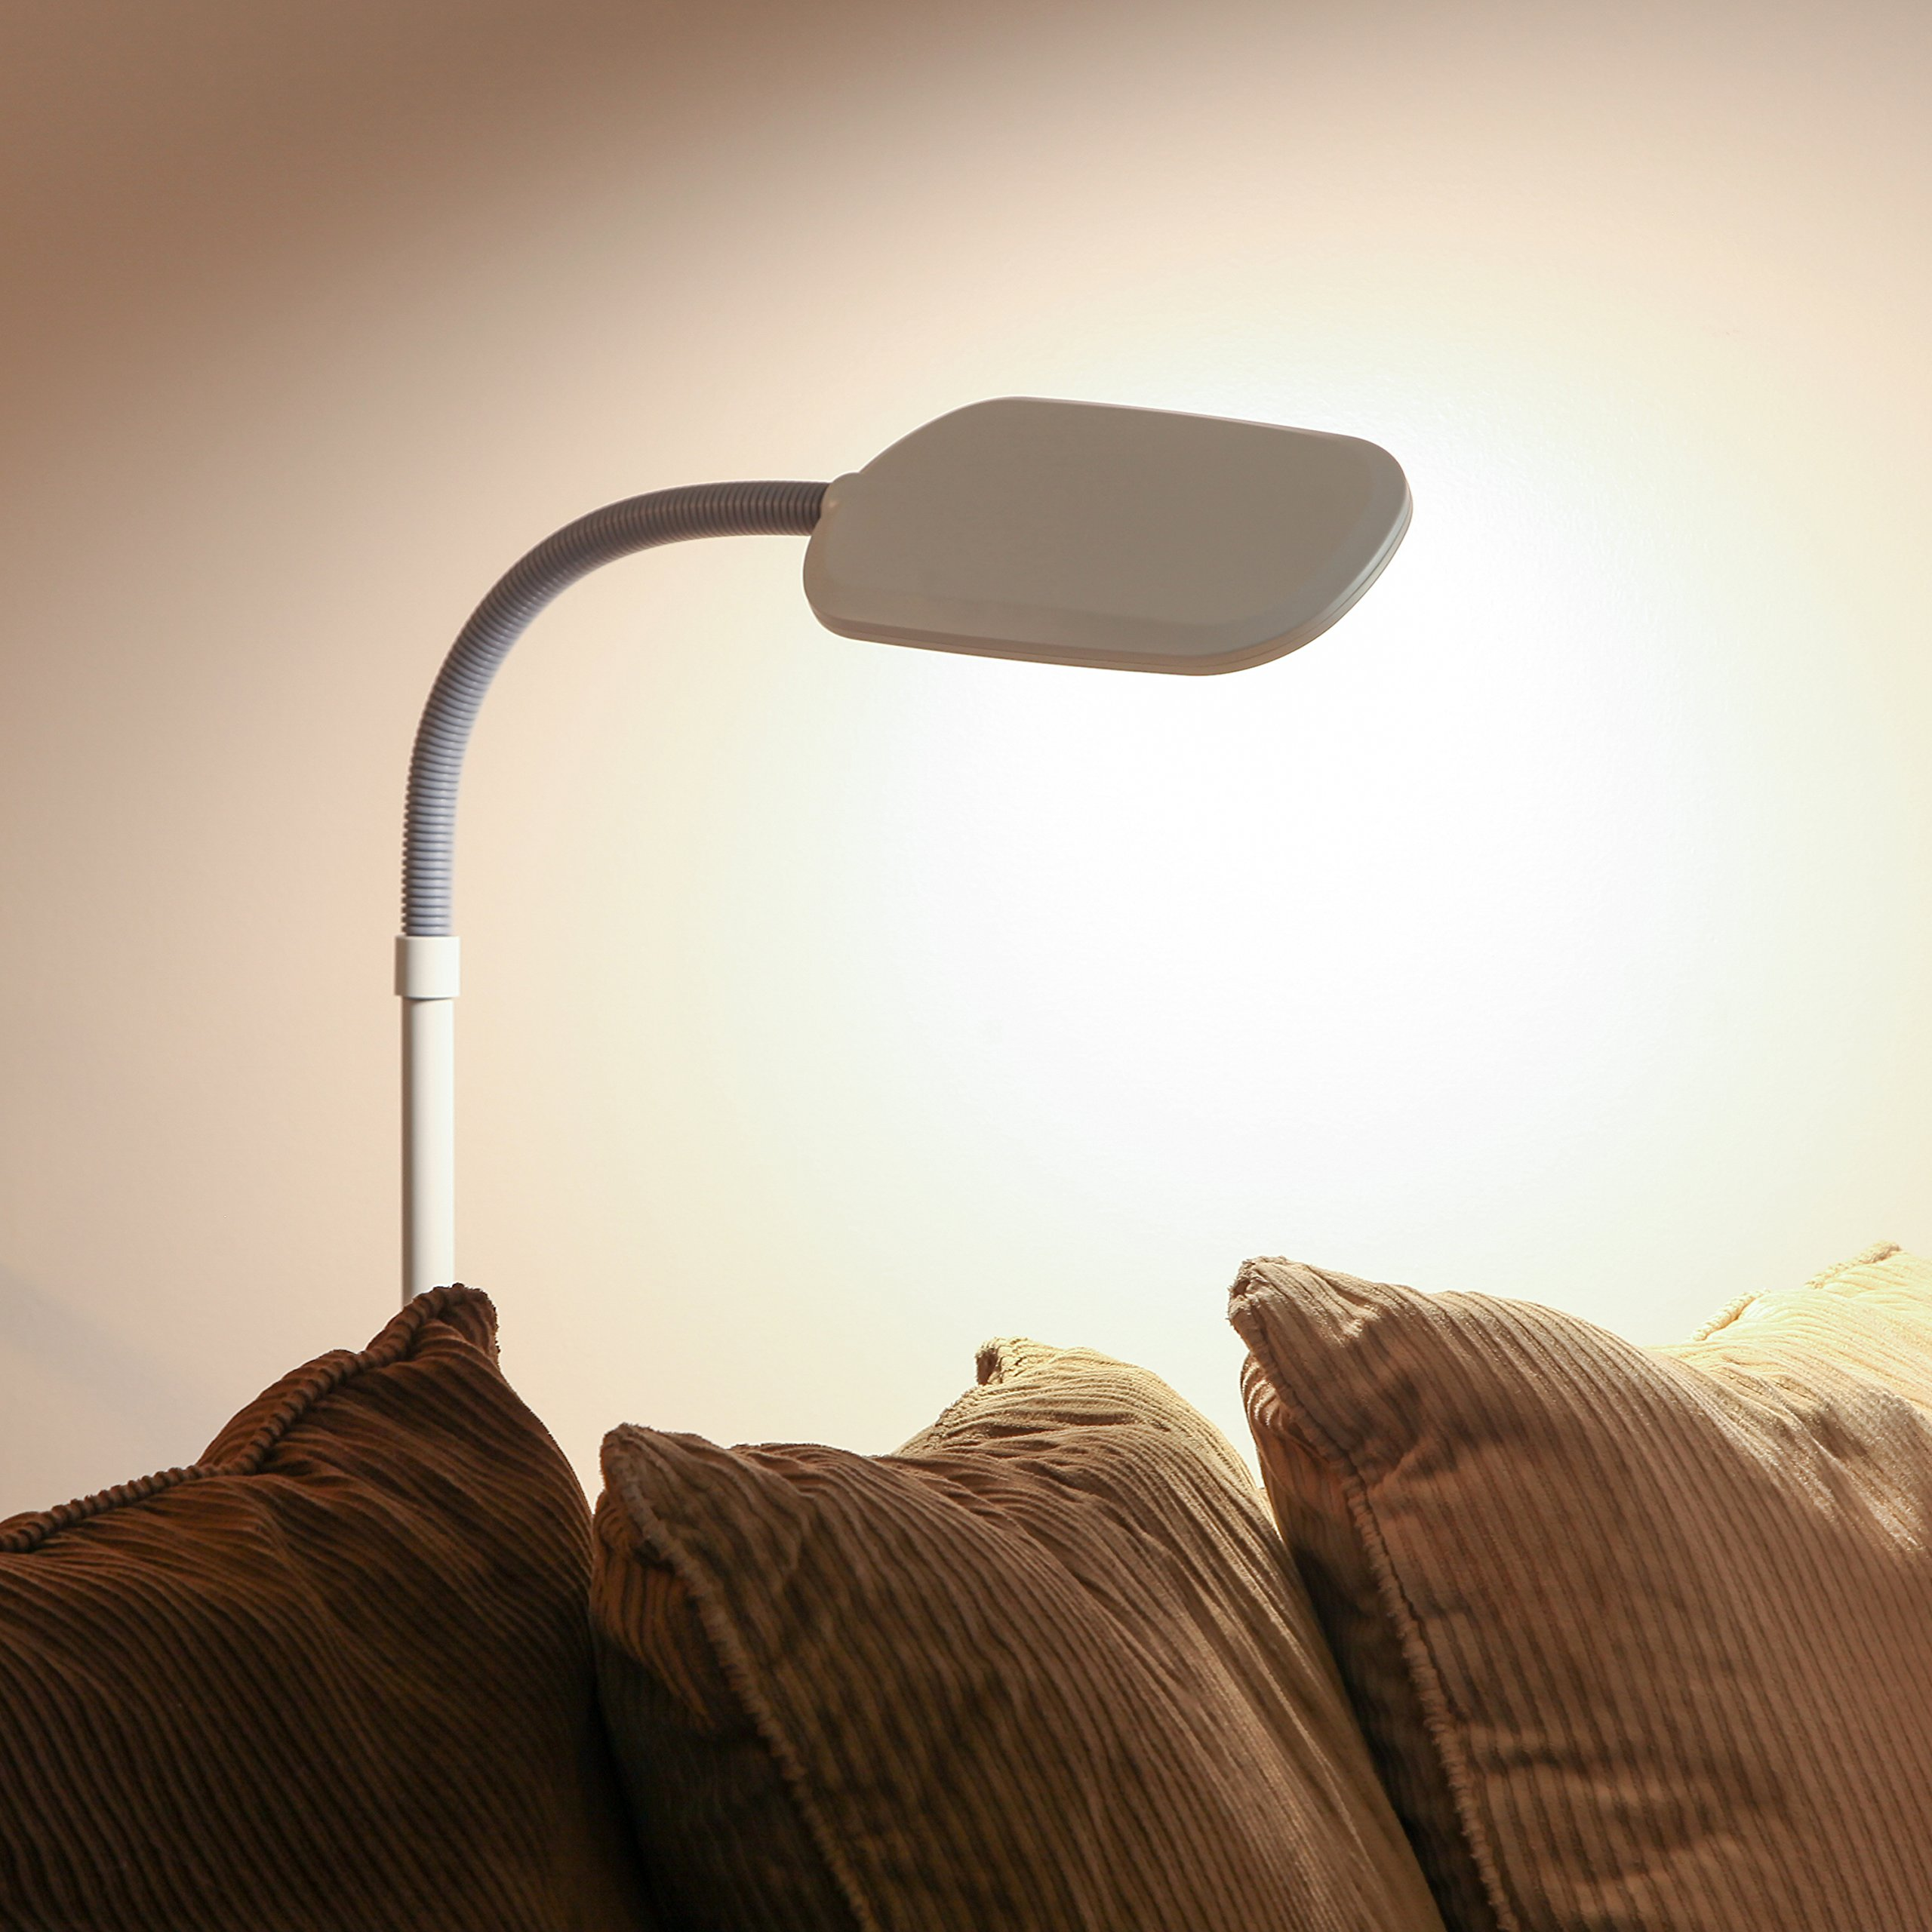 Brightech Litespan 2nd Edition LED Reading & Craft Floor Lamp - Dimmable & Light Color Adjustable with Touch Switch - Standing Tall Pole Task Lamp with Gooseneck for Office - Alpine White by Brightech (Image #7)